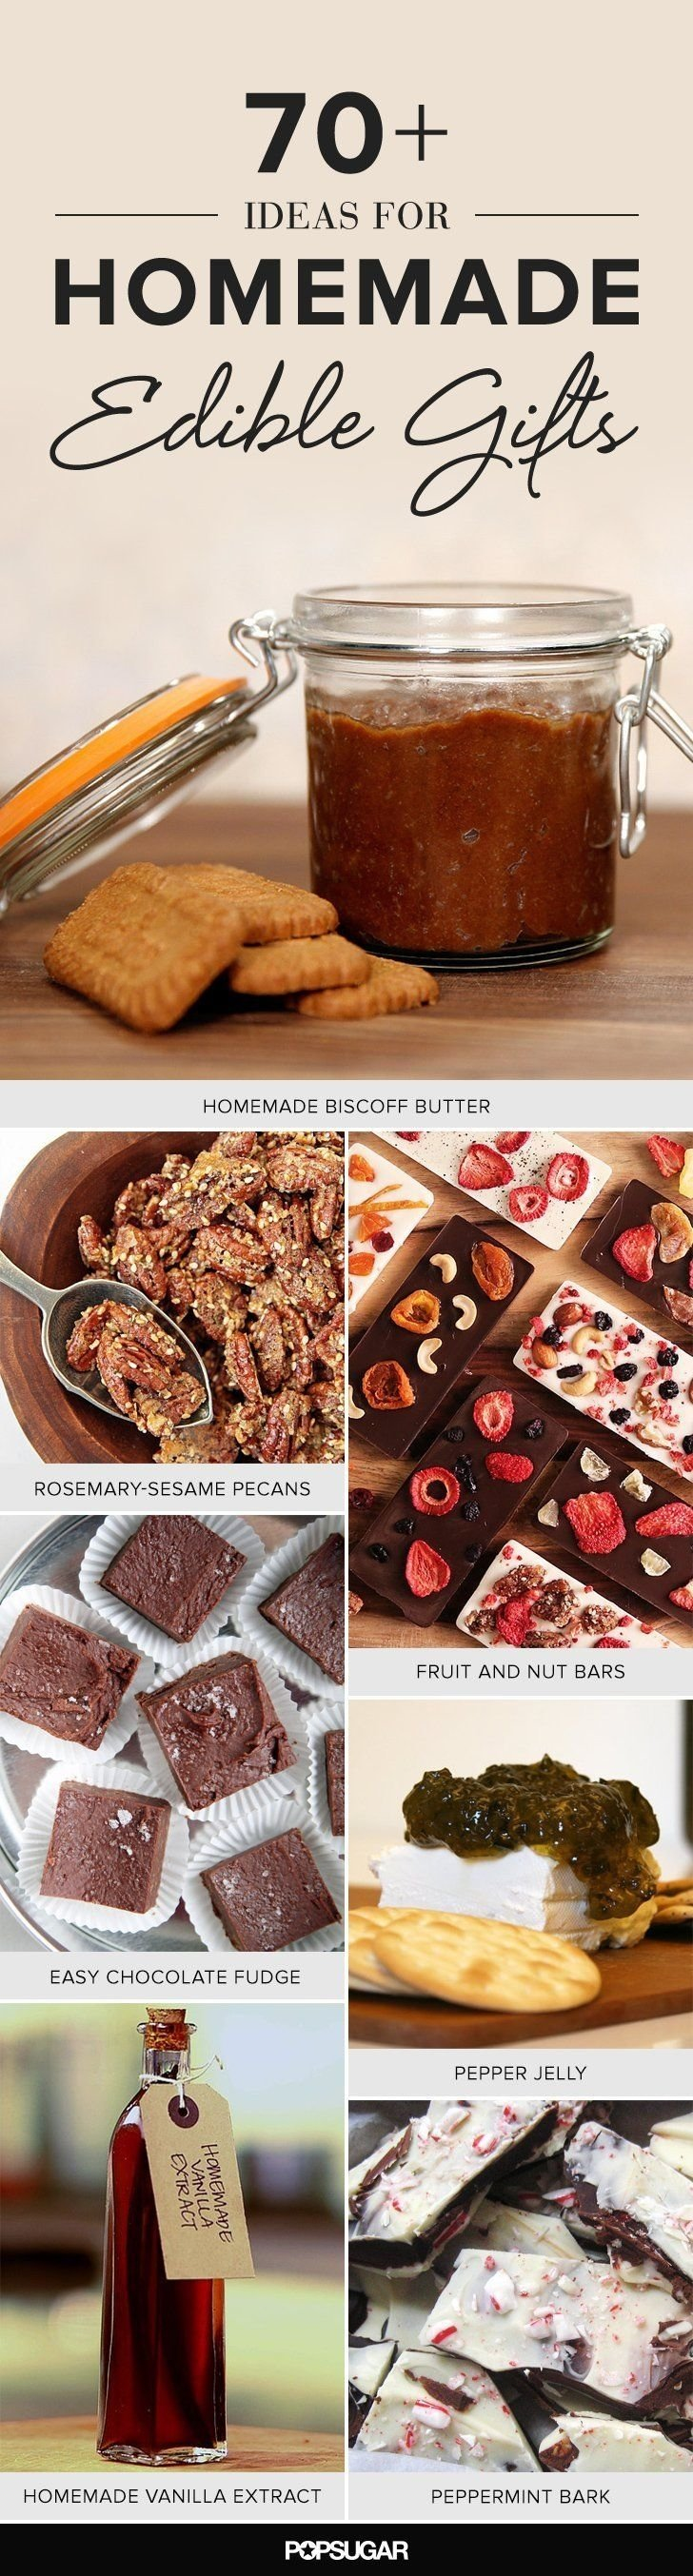 10 Famous Homemade Christmas Food Gift Ideas 30 best handmade holiday gifts images on pinterest hand made gifts 2020